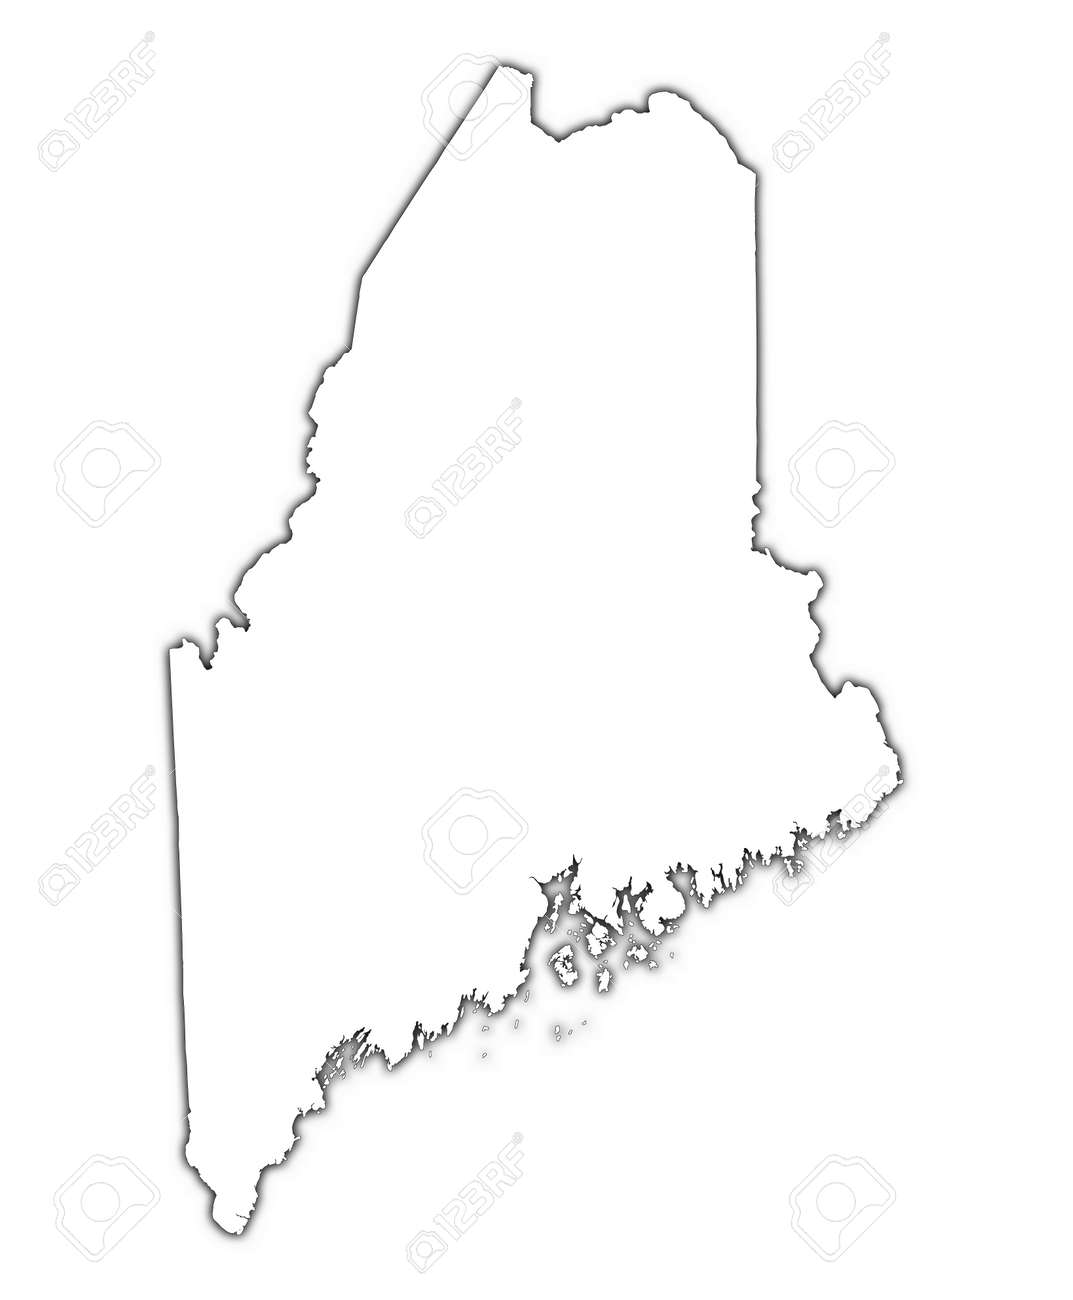 Maine USA Outline Map With Shadow Detailed Mercator Projection - Map of maine usa